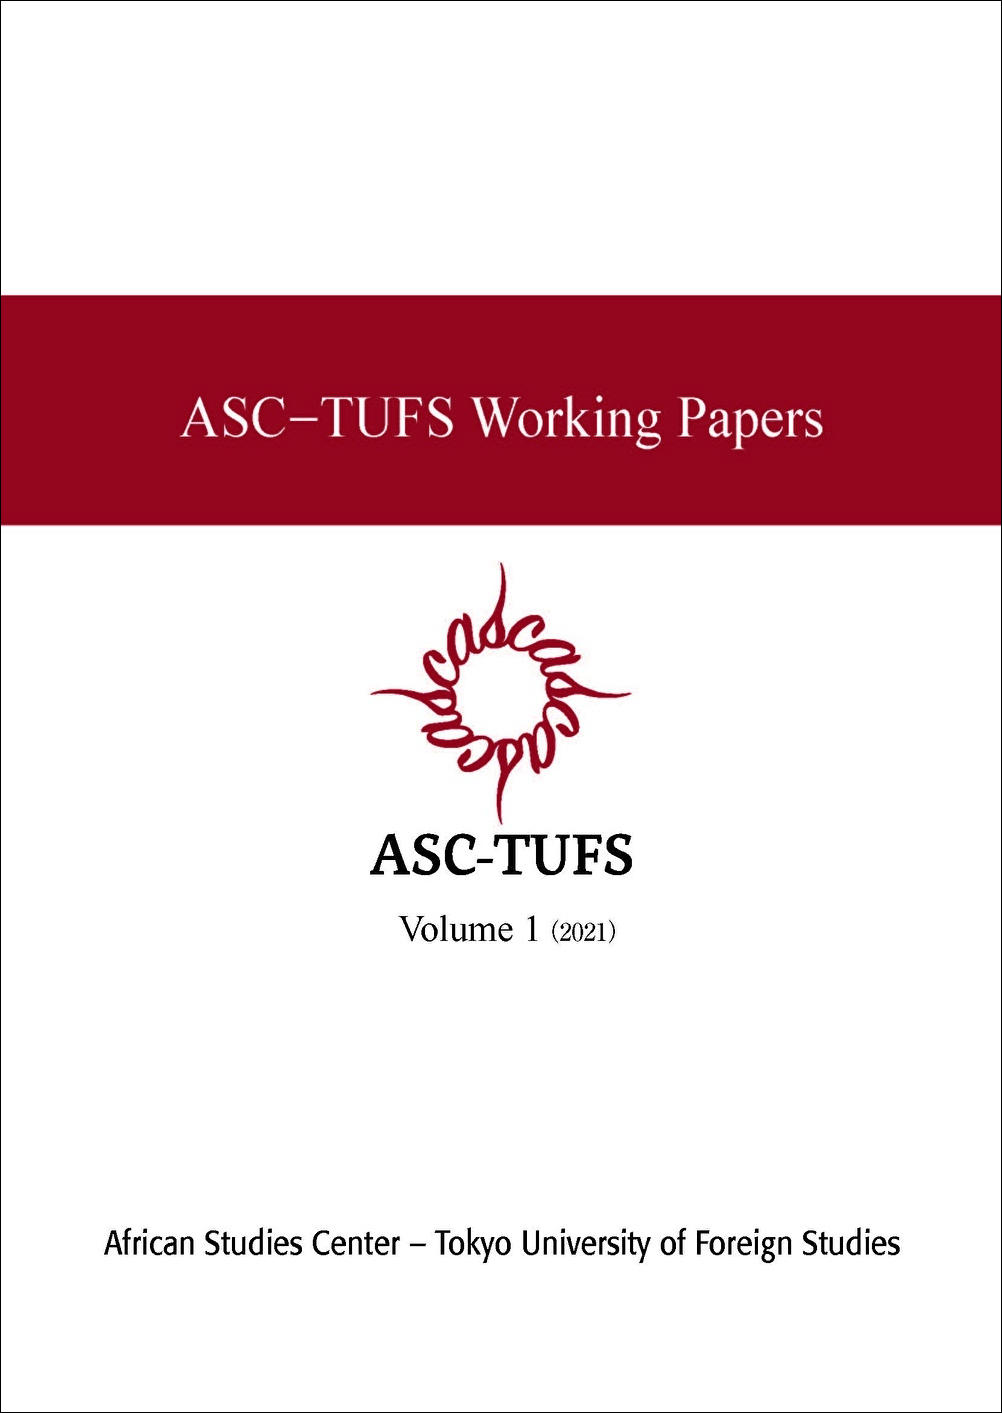 『ASC-TUFS Working Papers』を定期刊行物化しました